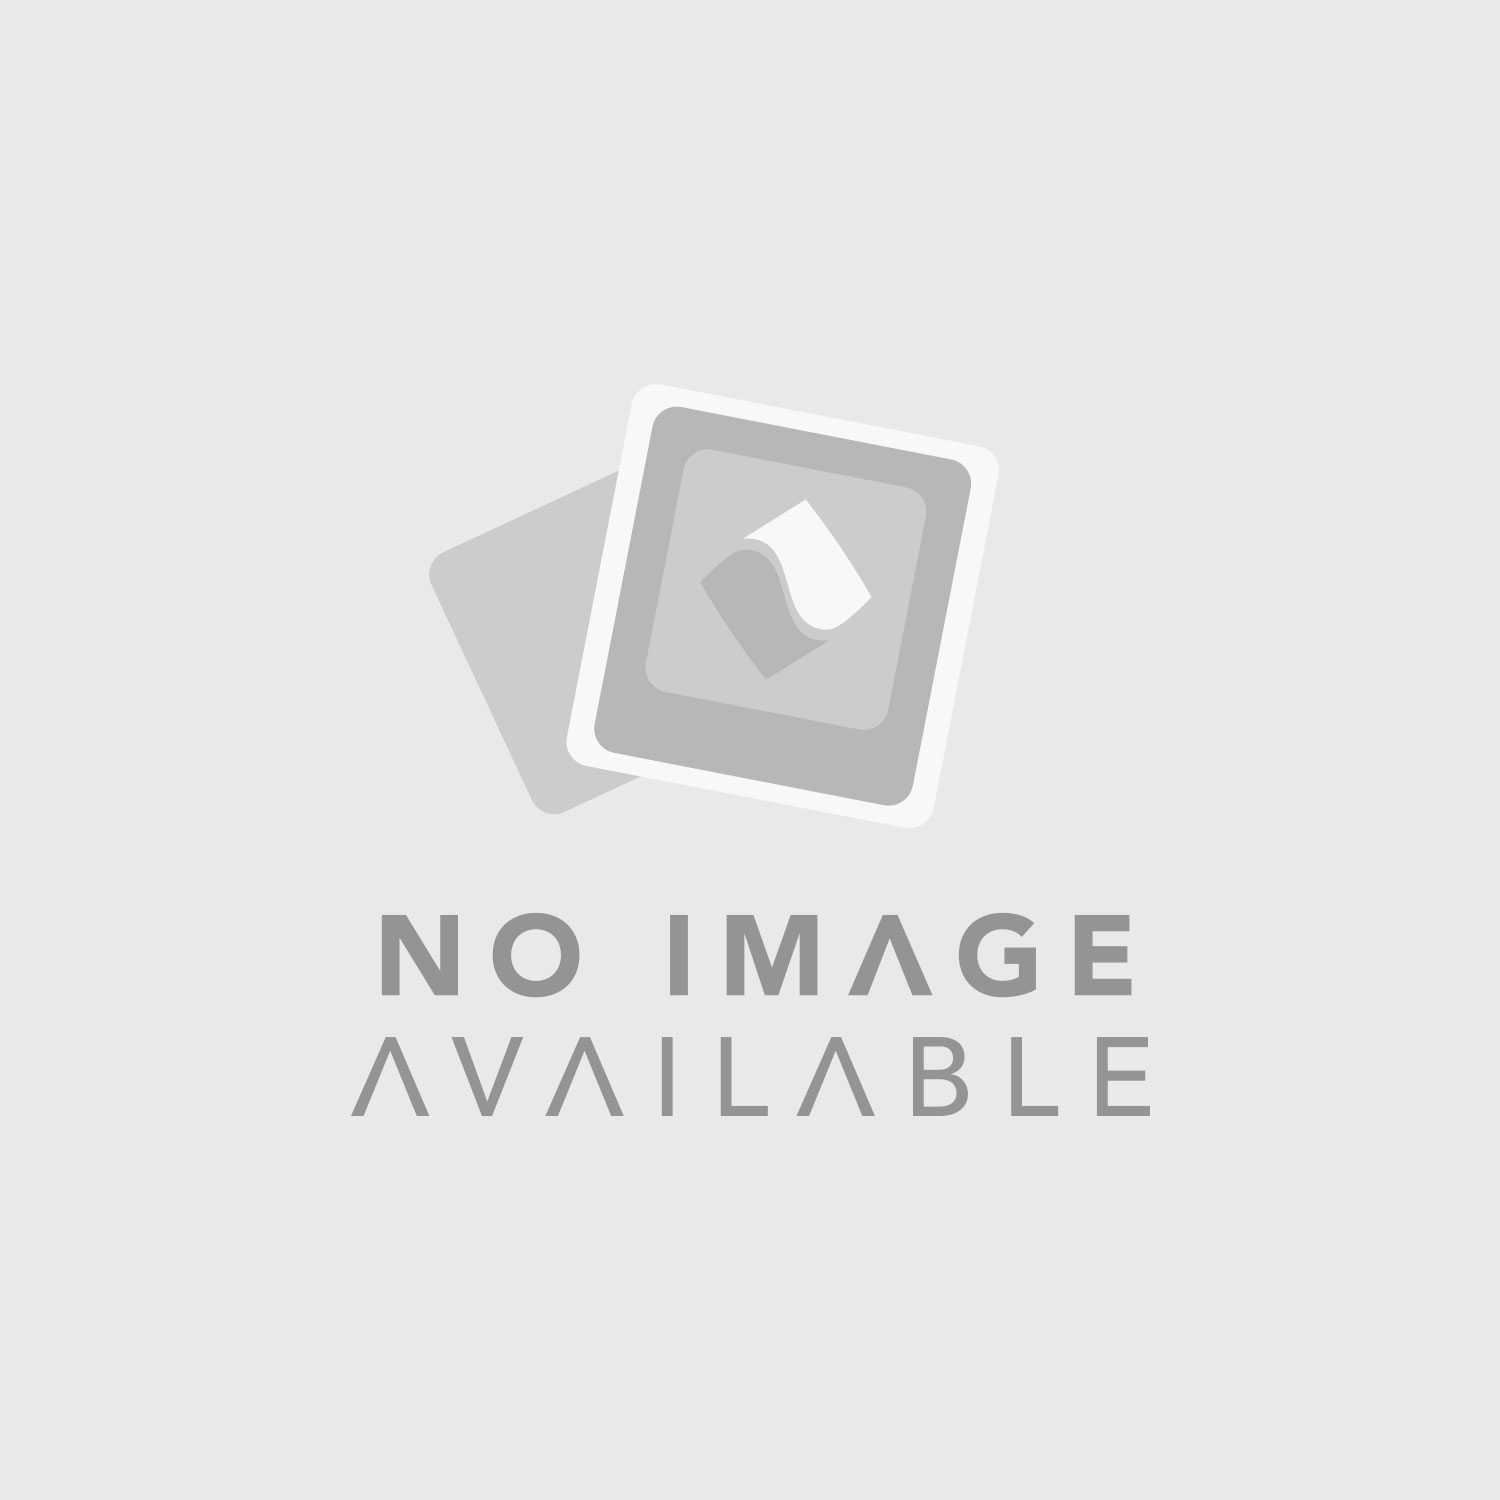 Chauvet EZpar 64 RGBA Battery-Powered Wash Light (White)